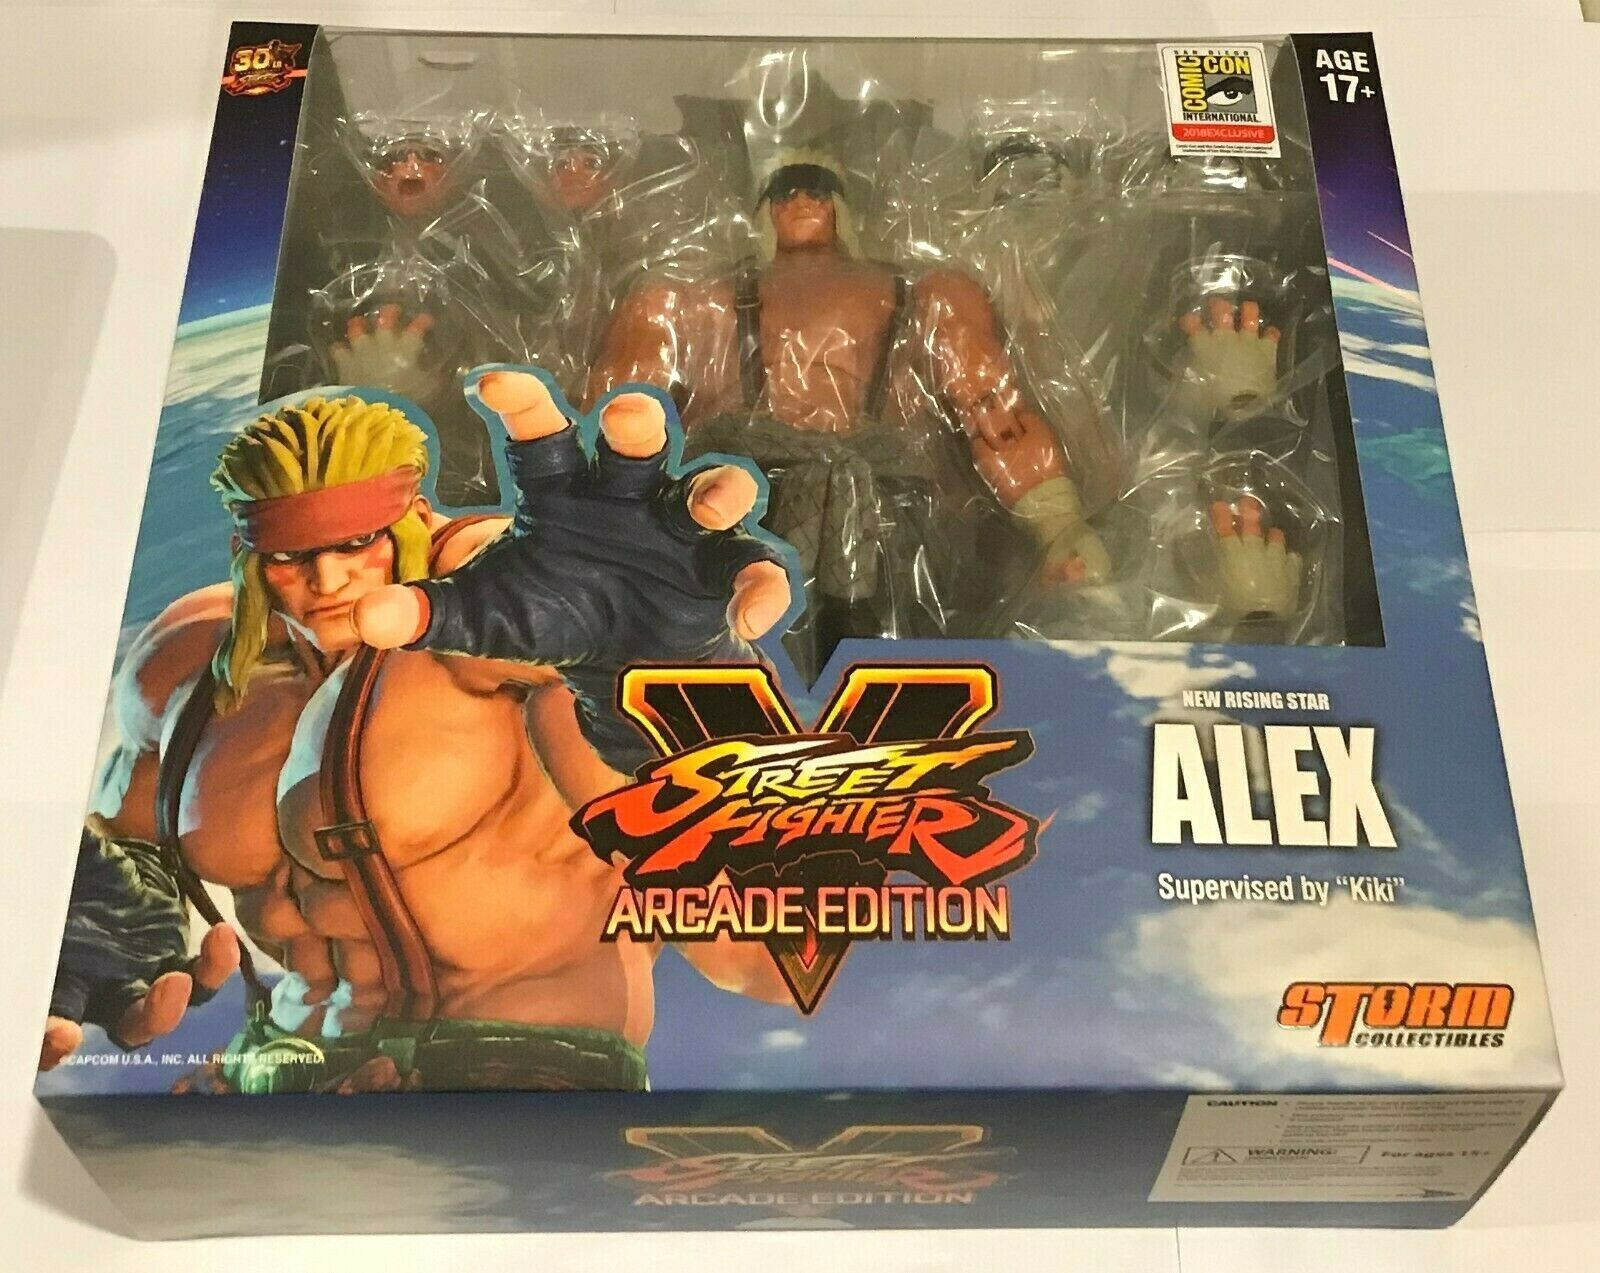 Alex SDCC 2018 Exclusive Action Figure *NEW* Street Fighter V Arcade Edition